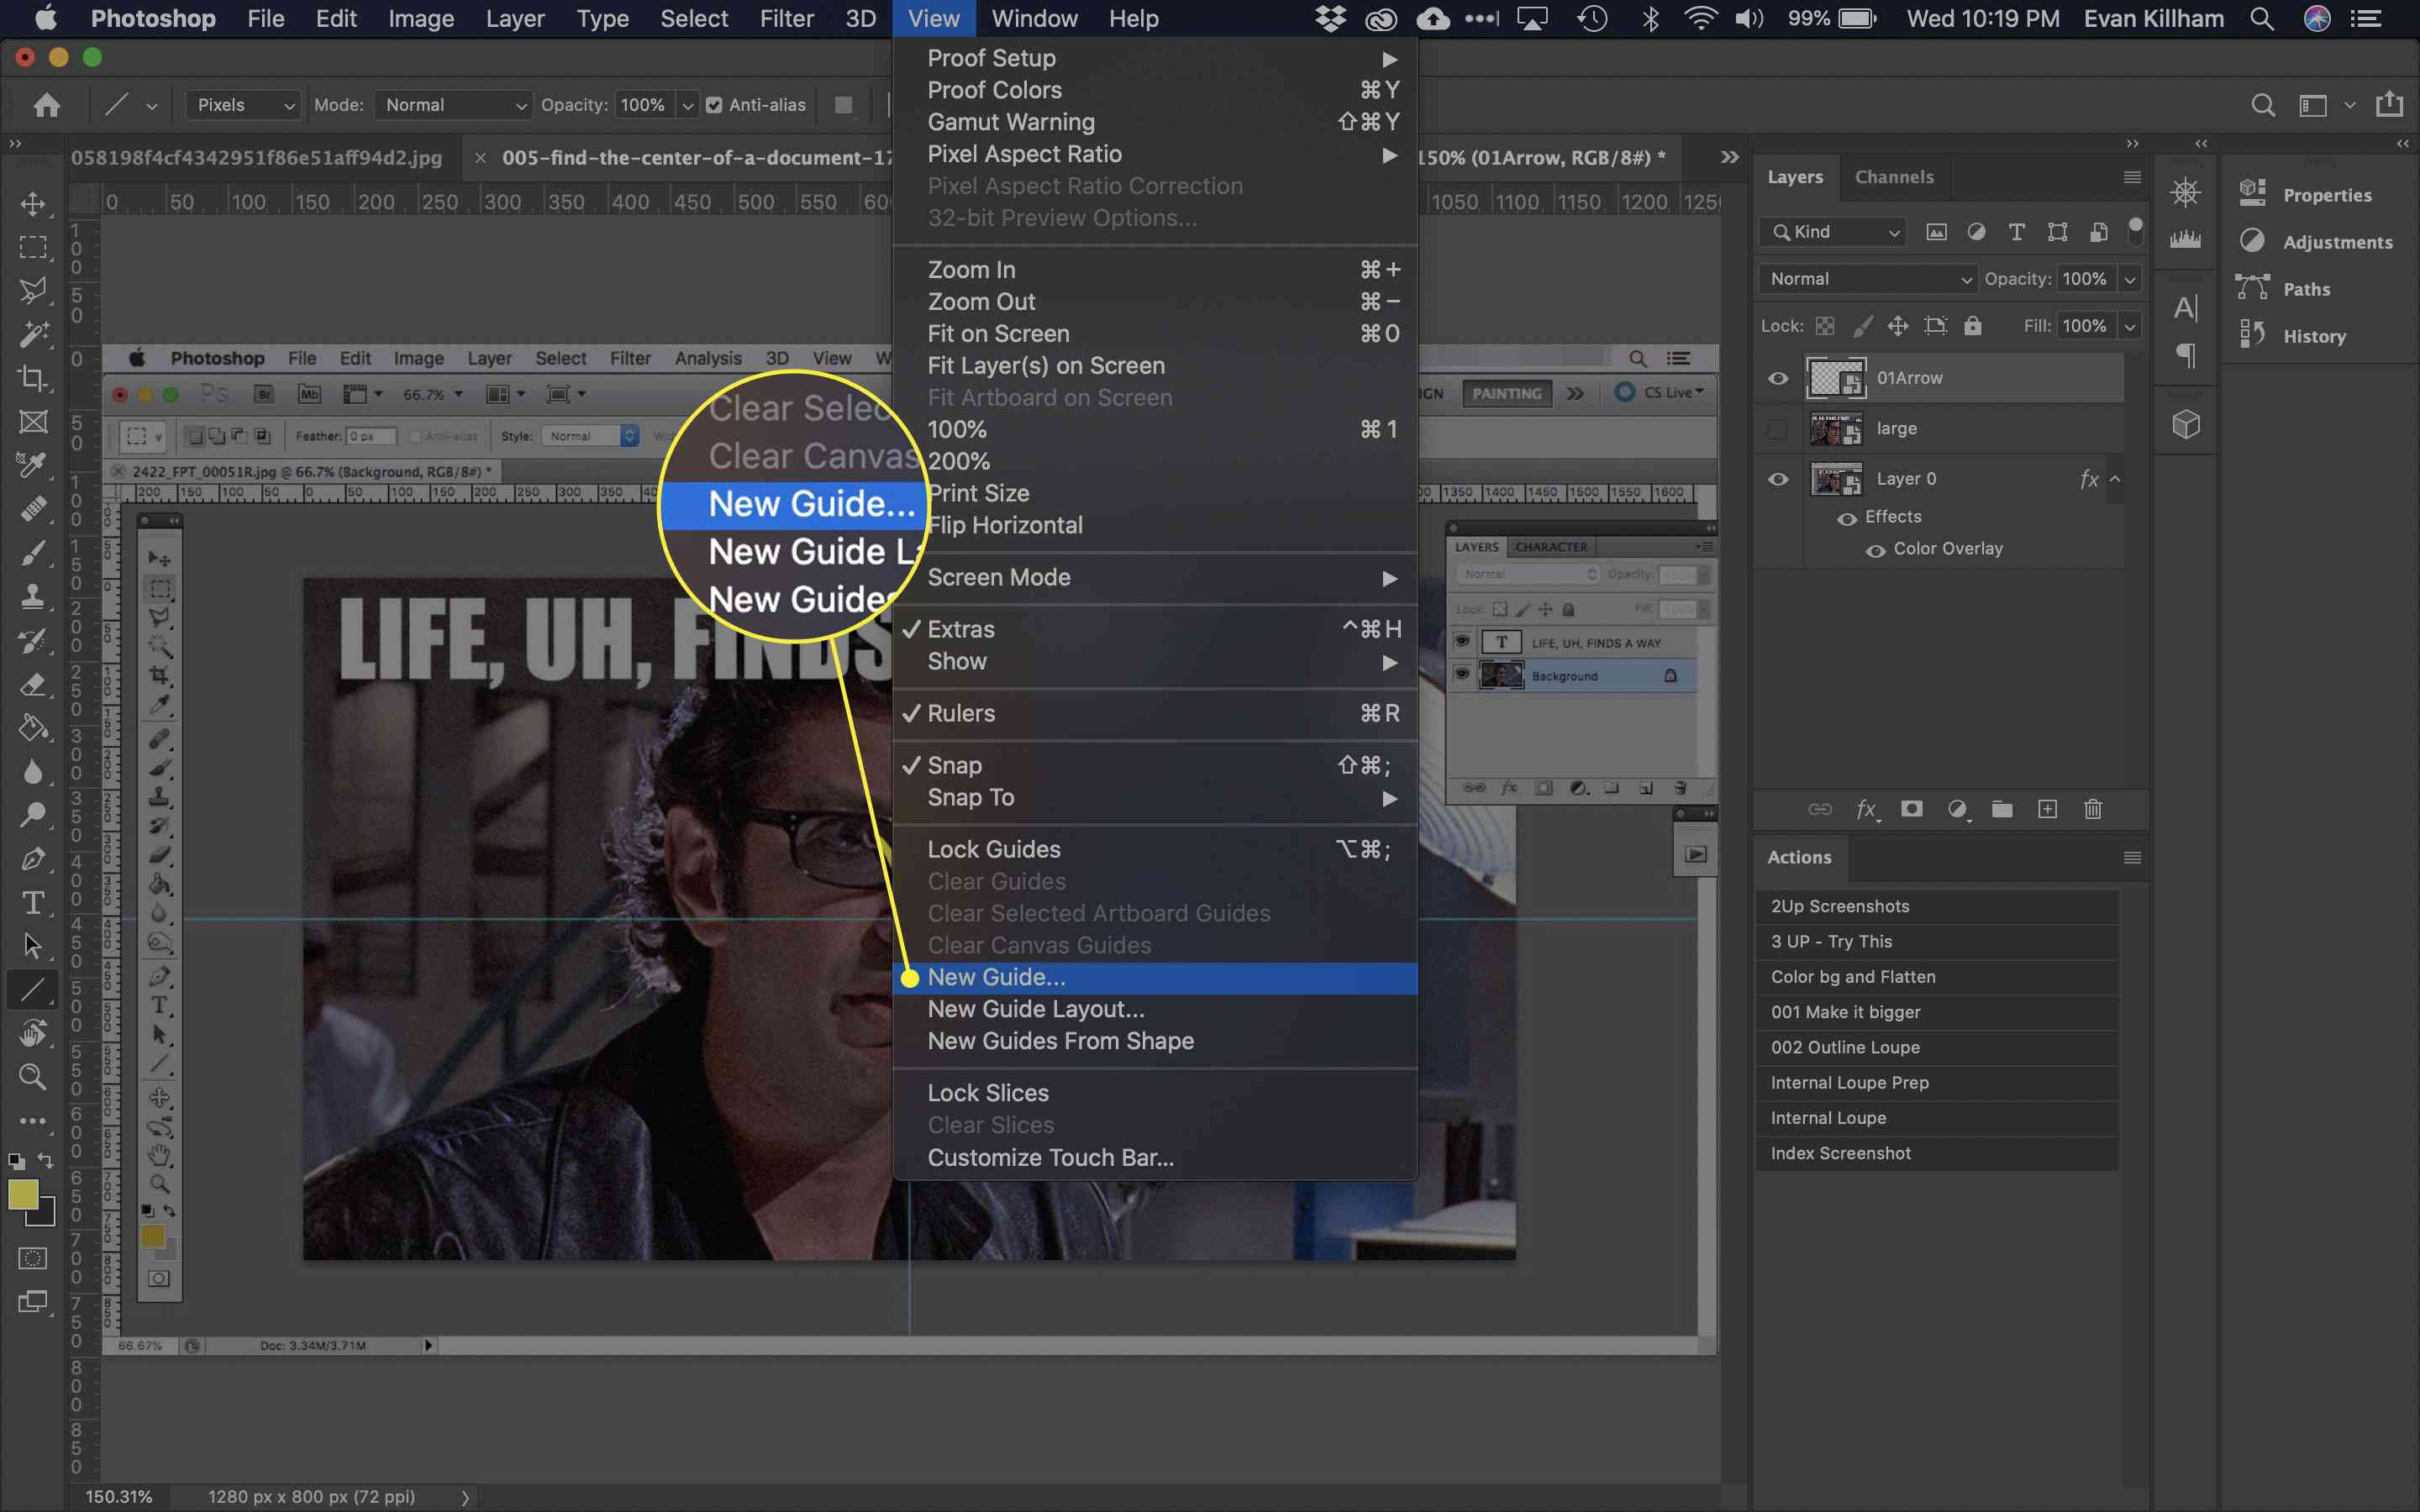 A screenshot of Photoshop with the New Guide menu item highlighted